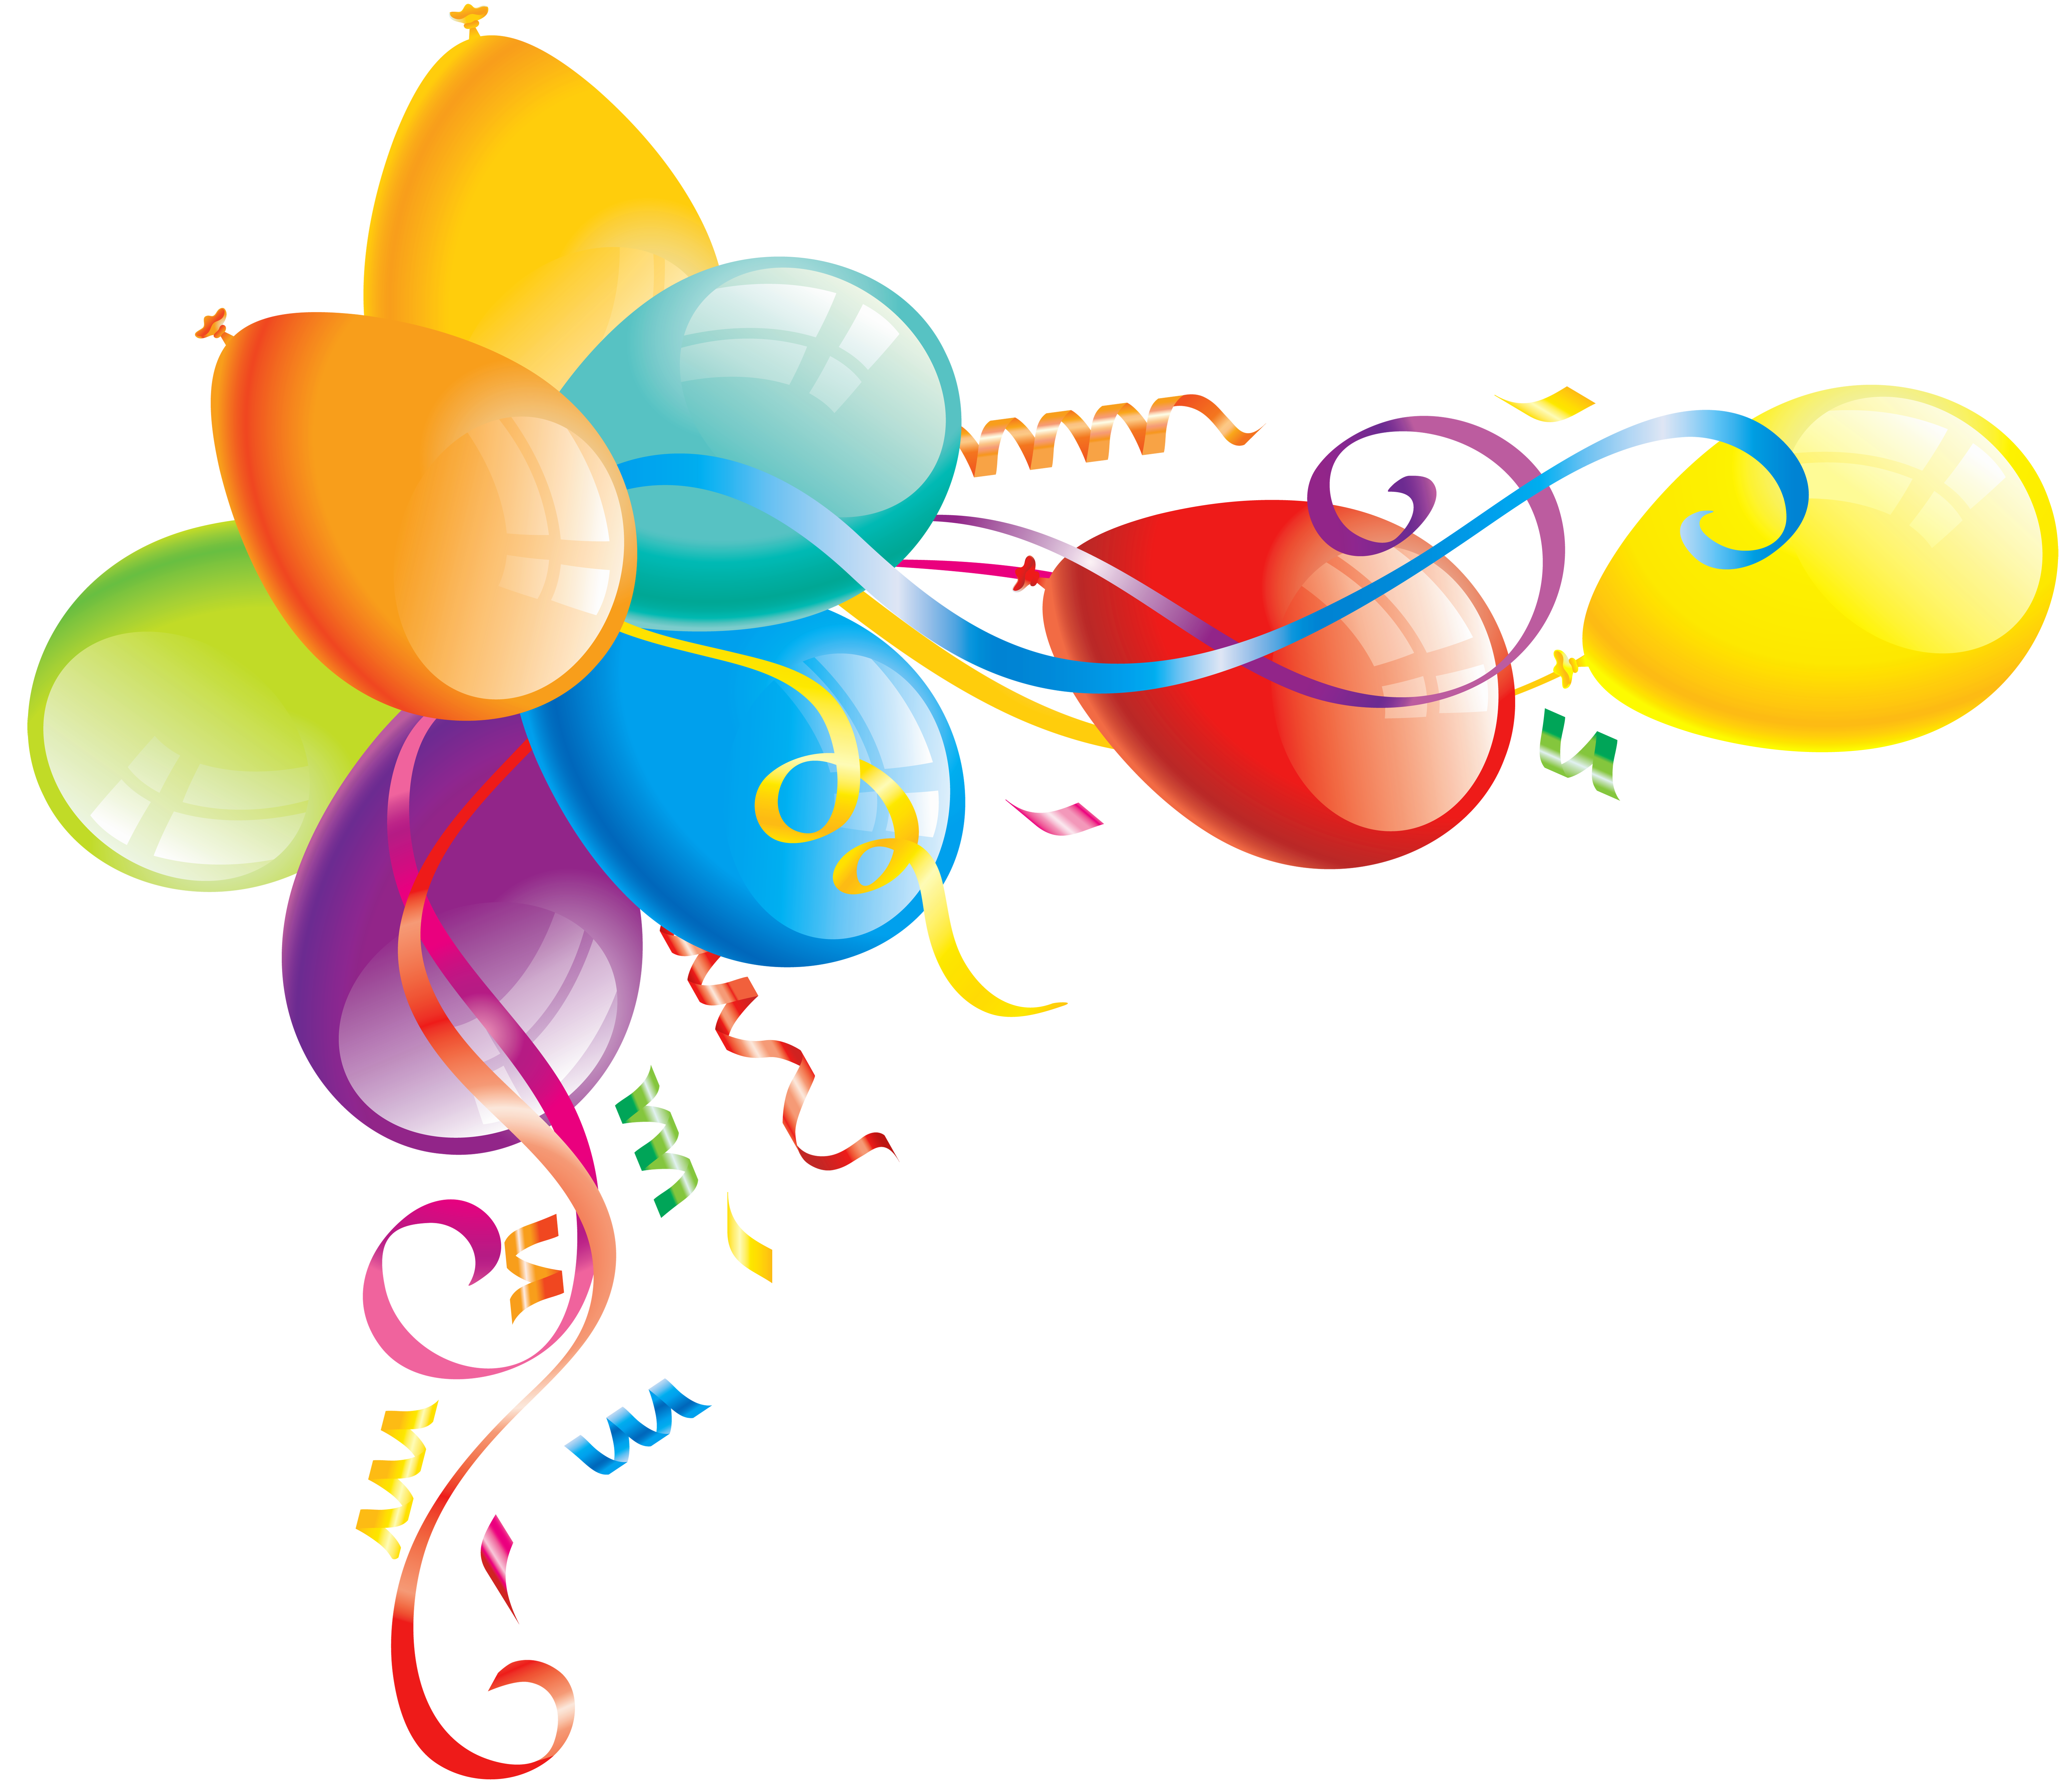 Large Transparent Balloons Clipart